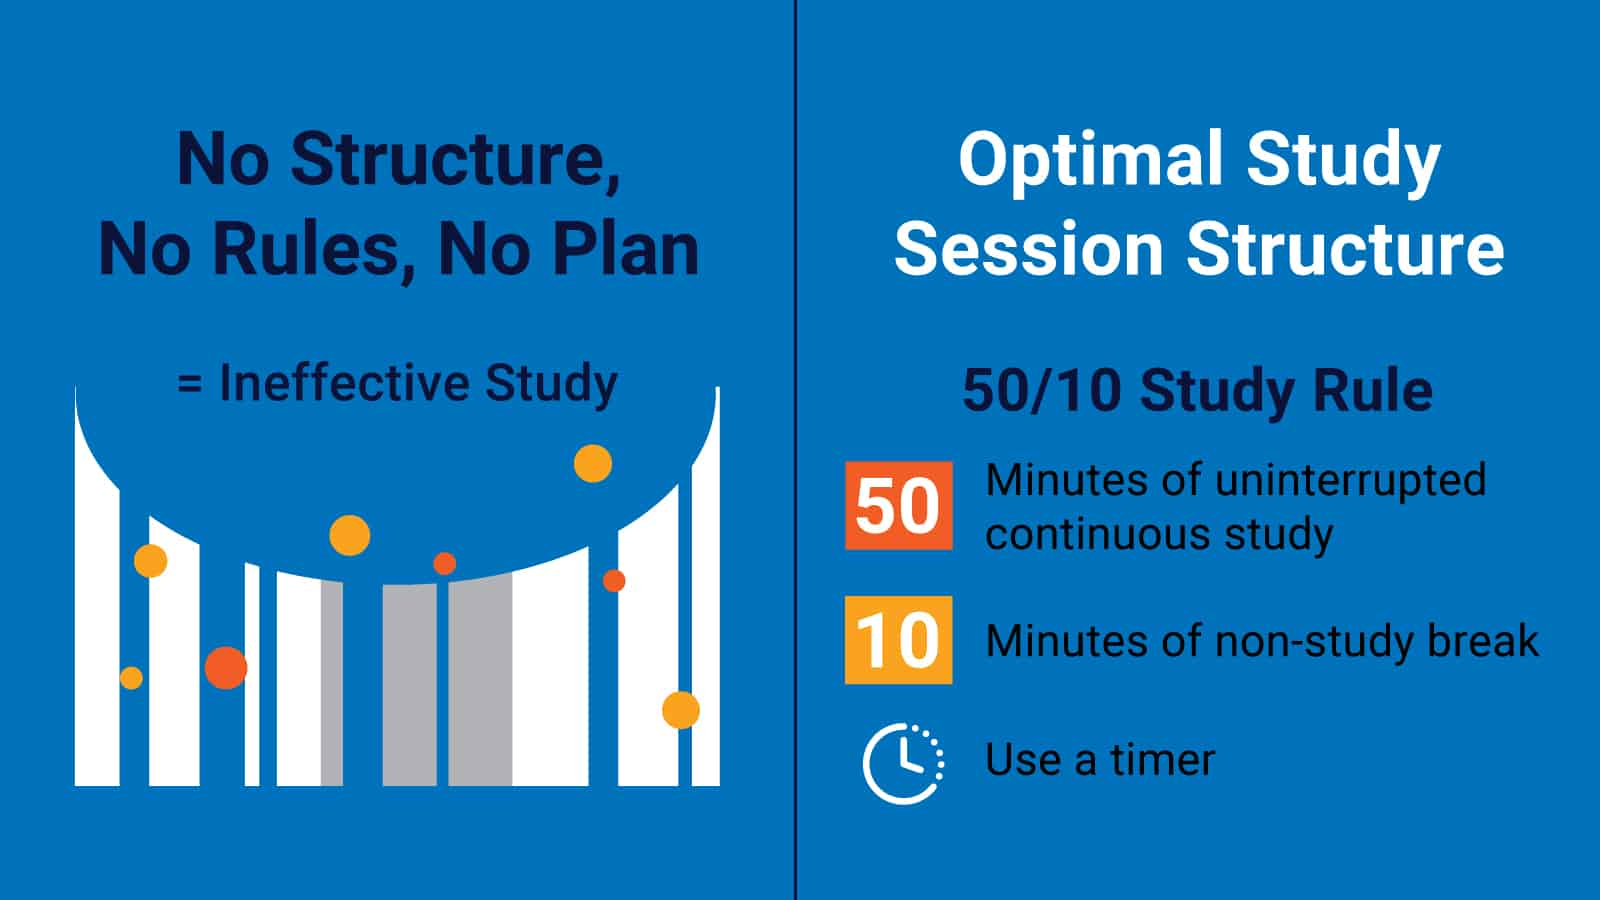 Optimal Study Session Structure Chart displays an ineffective study session and shares the 50/10 study rule,  recommending 50 minutes of uninterrupted continuous study and 10 minutes for a non-study break.